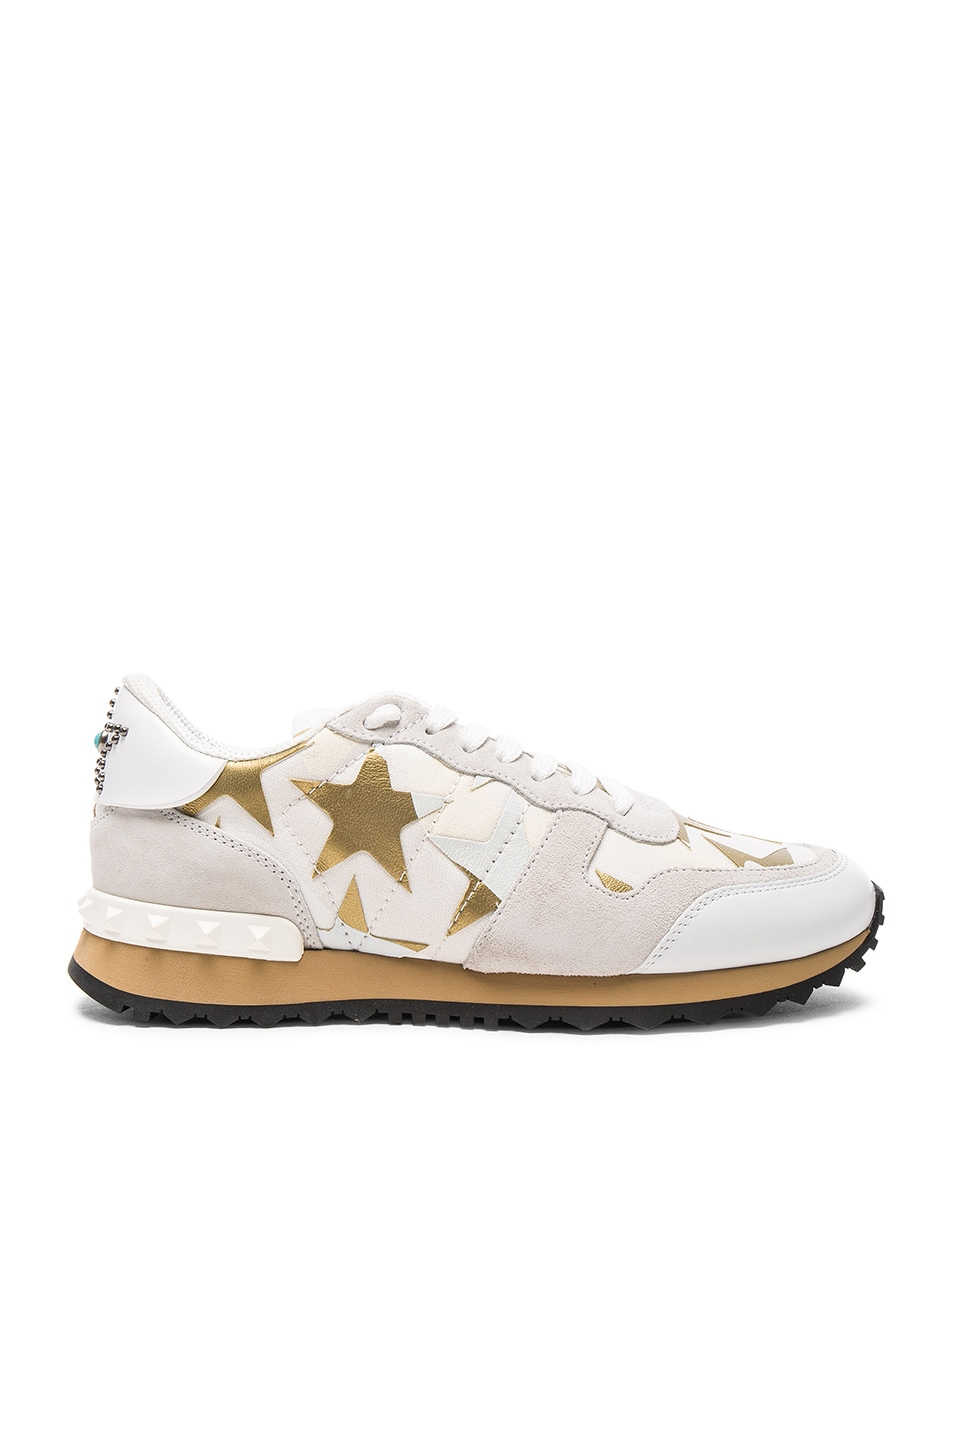 Image 1 of Valentino Canvas & Suede Sneakers in Bianco, Gold, & Multi